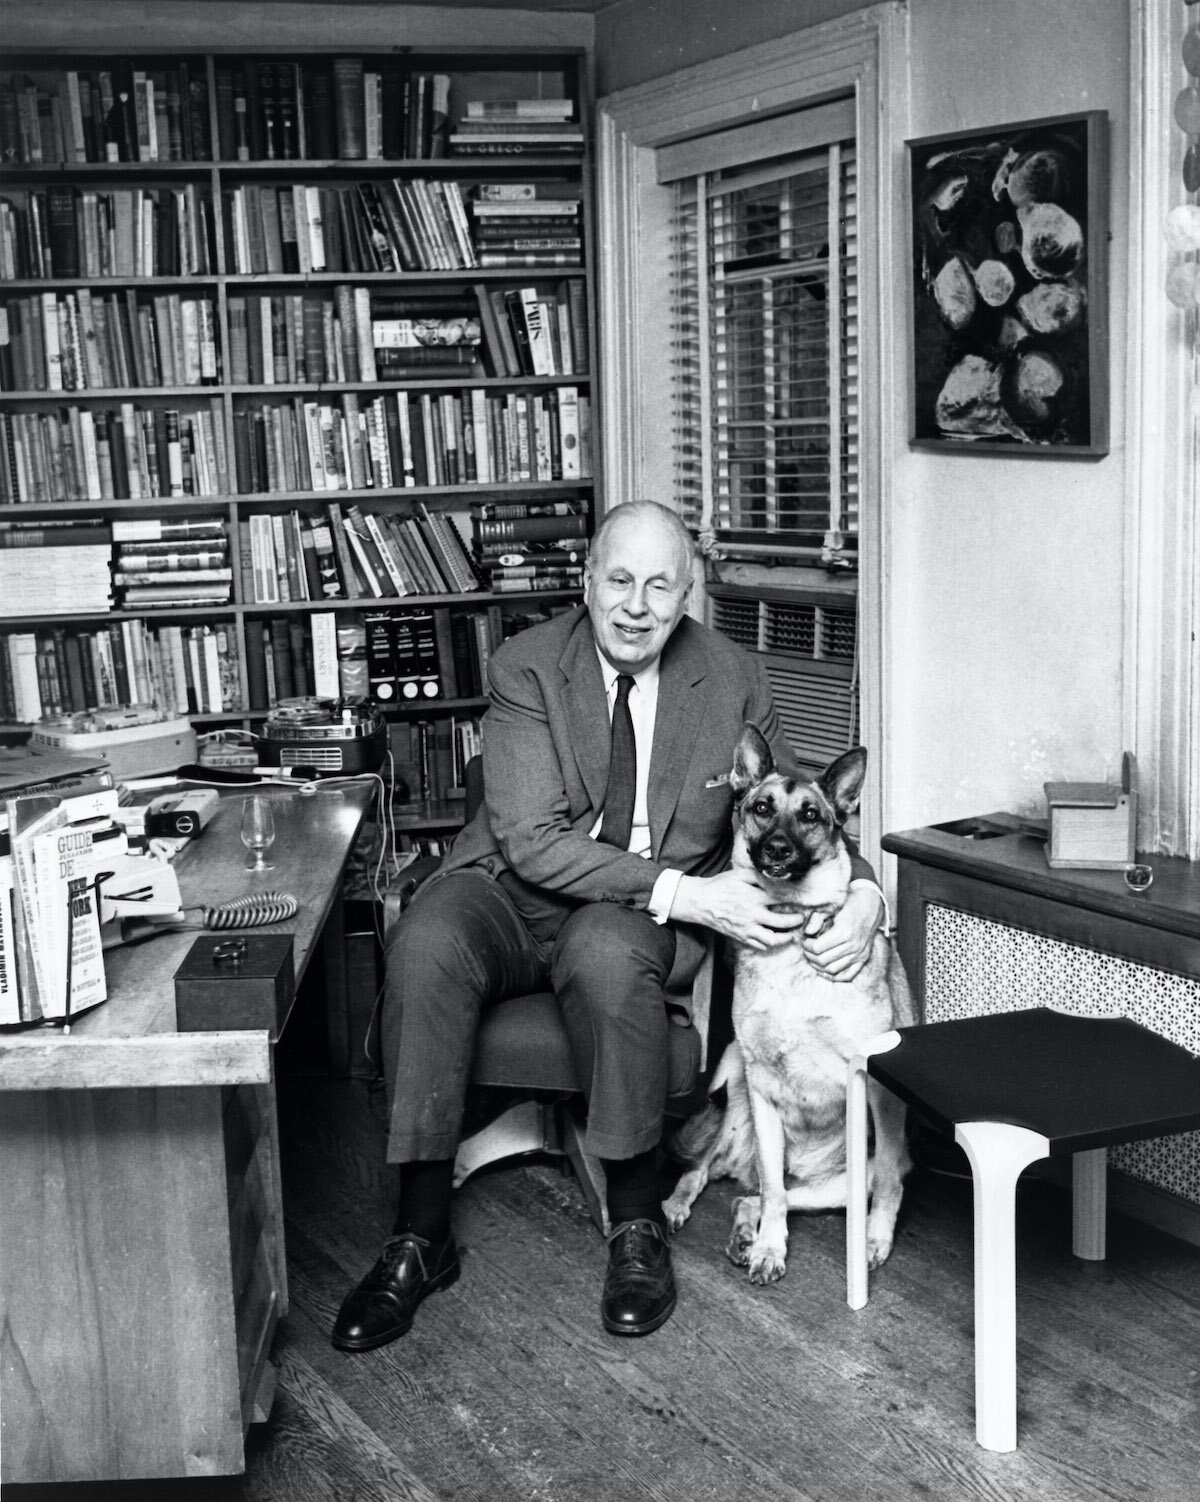 De Groot in the study of his Bleeker Gardens apartment c.1973, accompanied by his seeing-eye dog, Otona, and showing his dictation equipment. (Photo: Fiona Rhodes.)